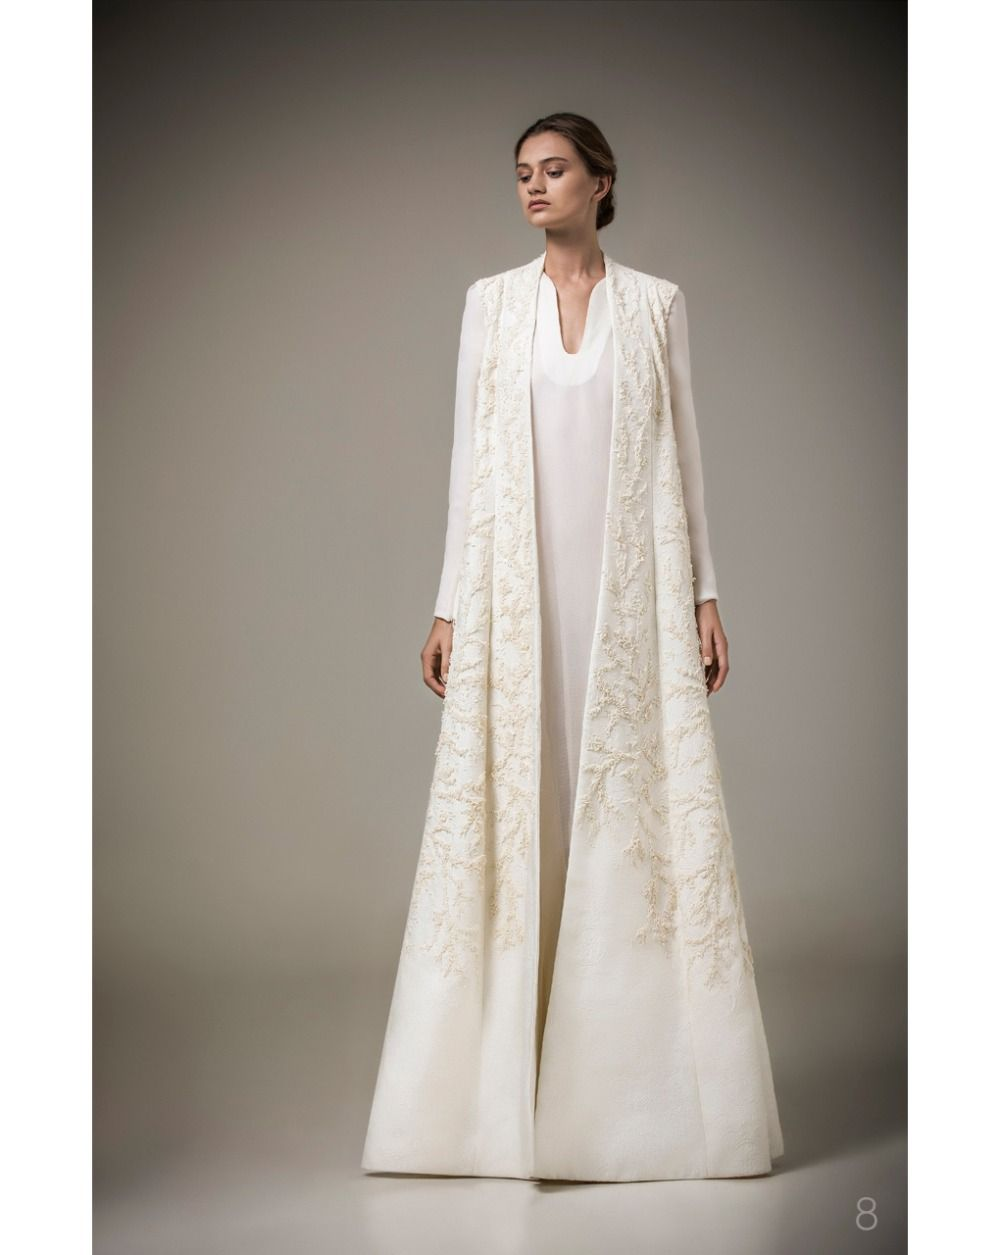 d44da3bd39171 Elegant White Long Sleeve Muslim Arab Robe Formal Evening Dresses ...